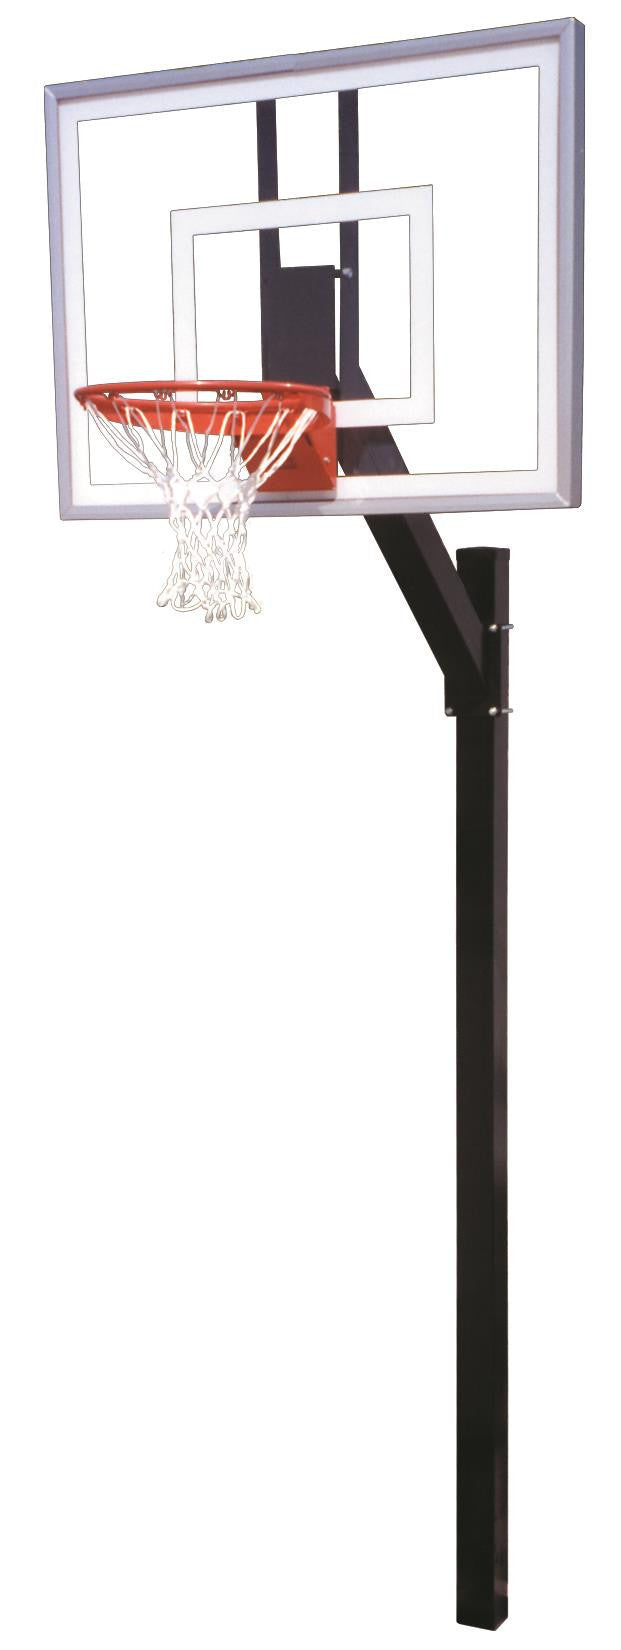 First Team Legacy Turbo In Ground Fixed Height Outdoor Basketball Hoop 54 inch Tempered Glass